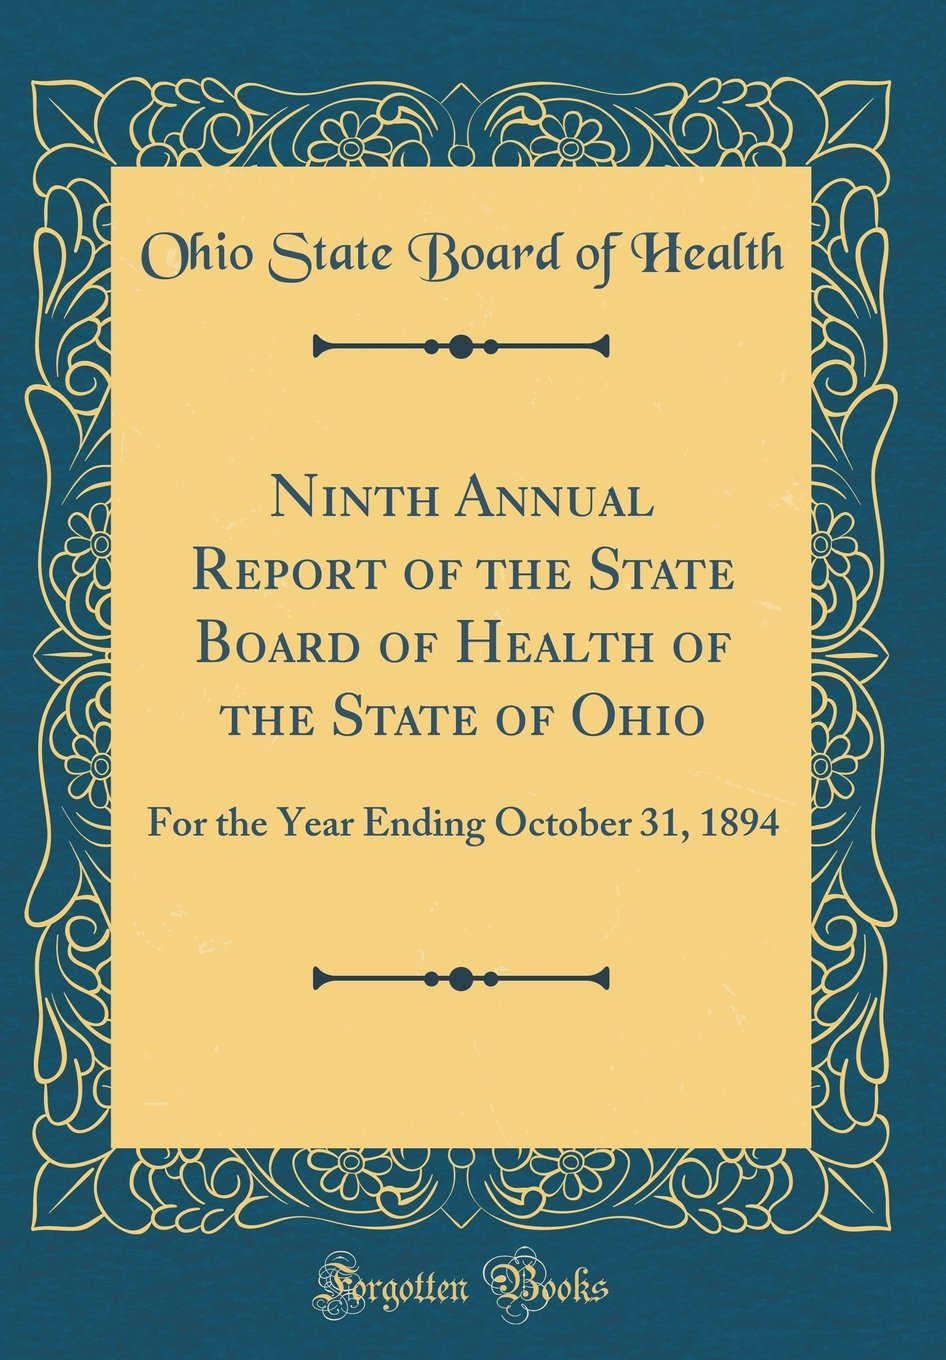 Ninth Annual Report of the State Board of Health of the State of Ohio: For the Year Ending October 31, 1894 (Classic Reprint) ebook